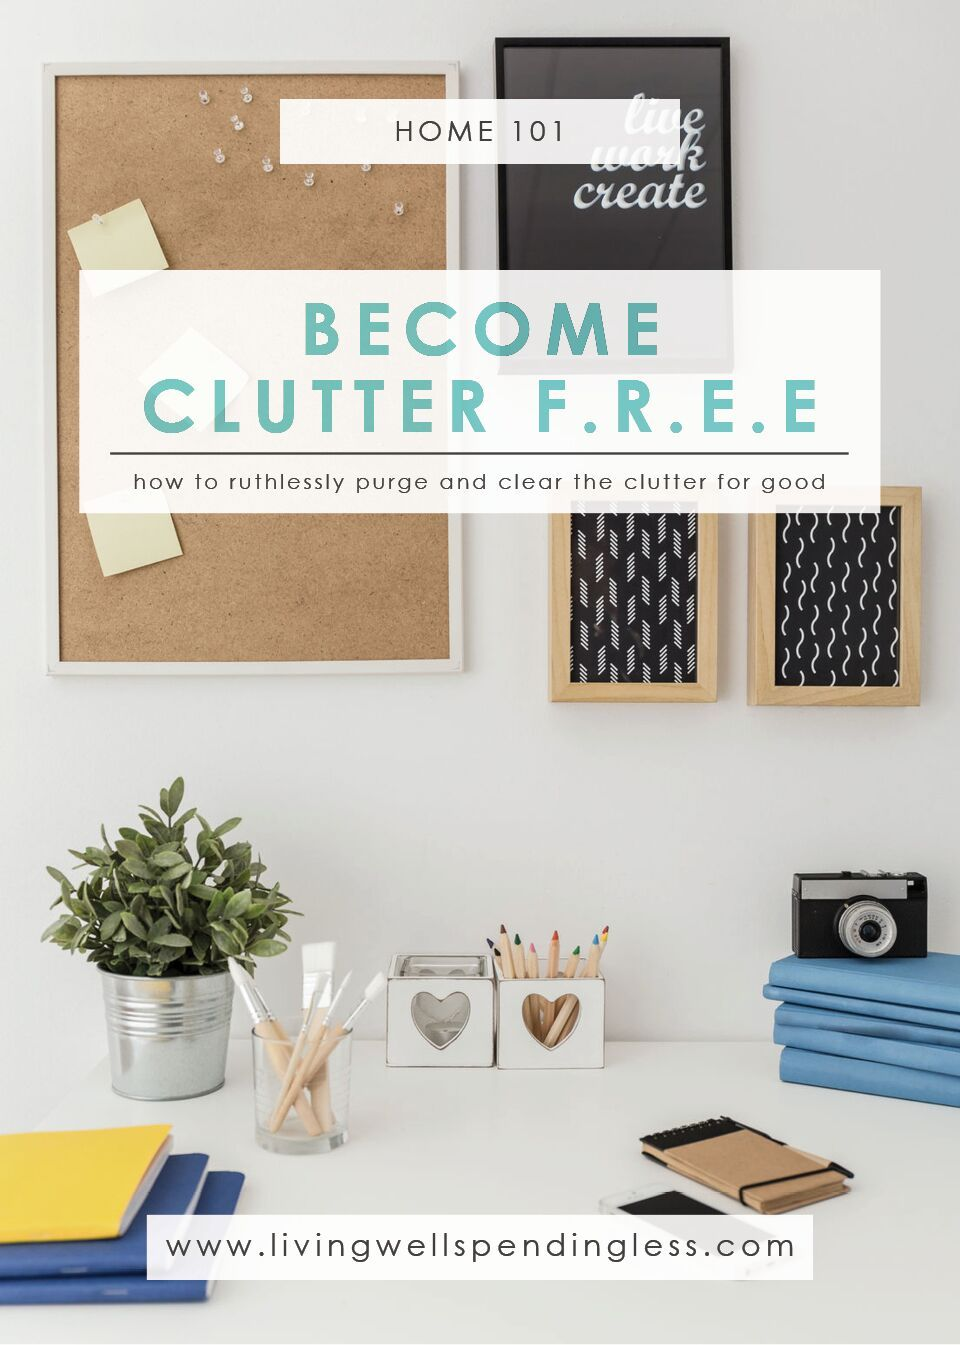 Clutter Free | Clutter, Organizations and Management